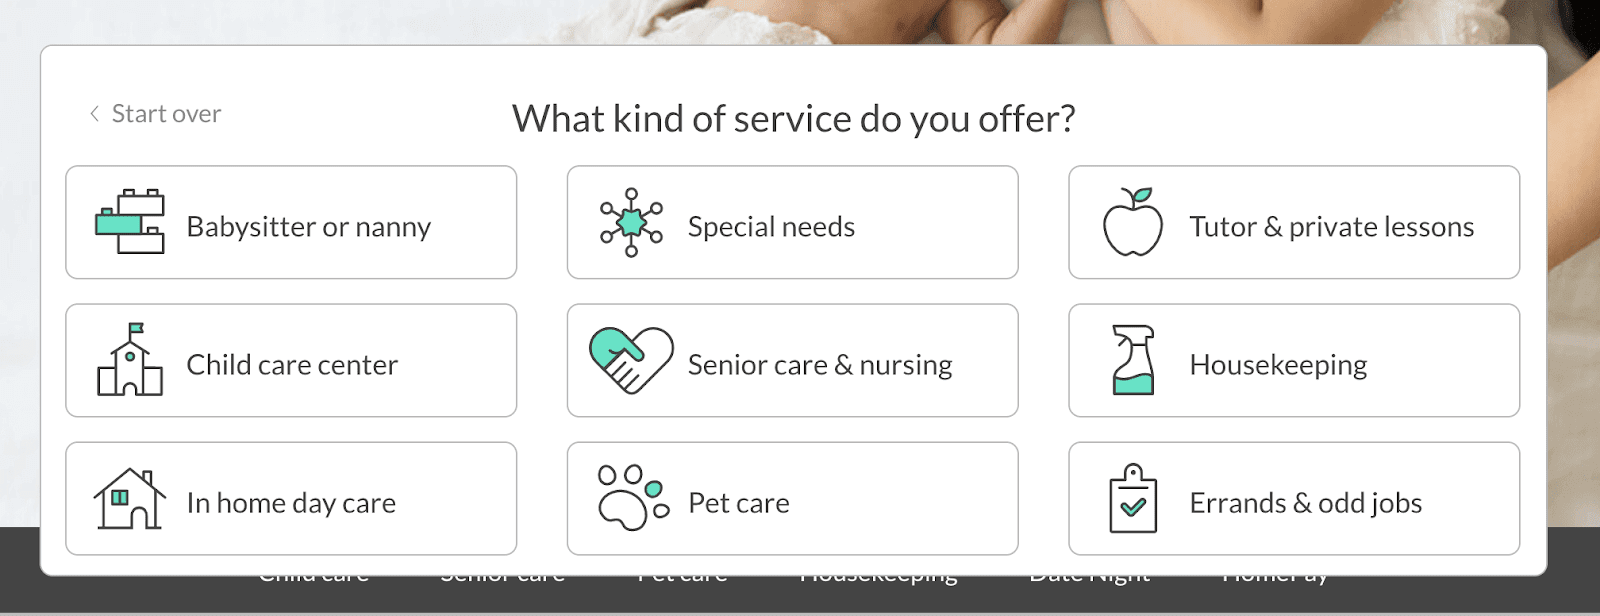 Care.com Requirements: What You Need to Become a Caregiver - Step 2